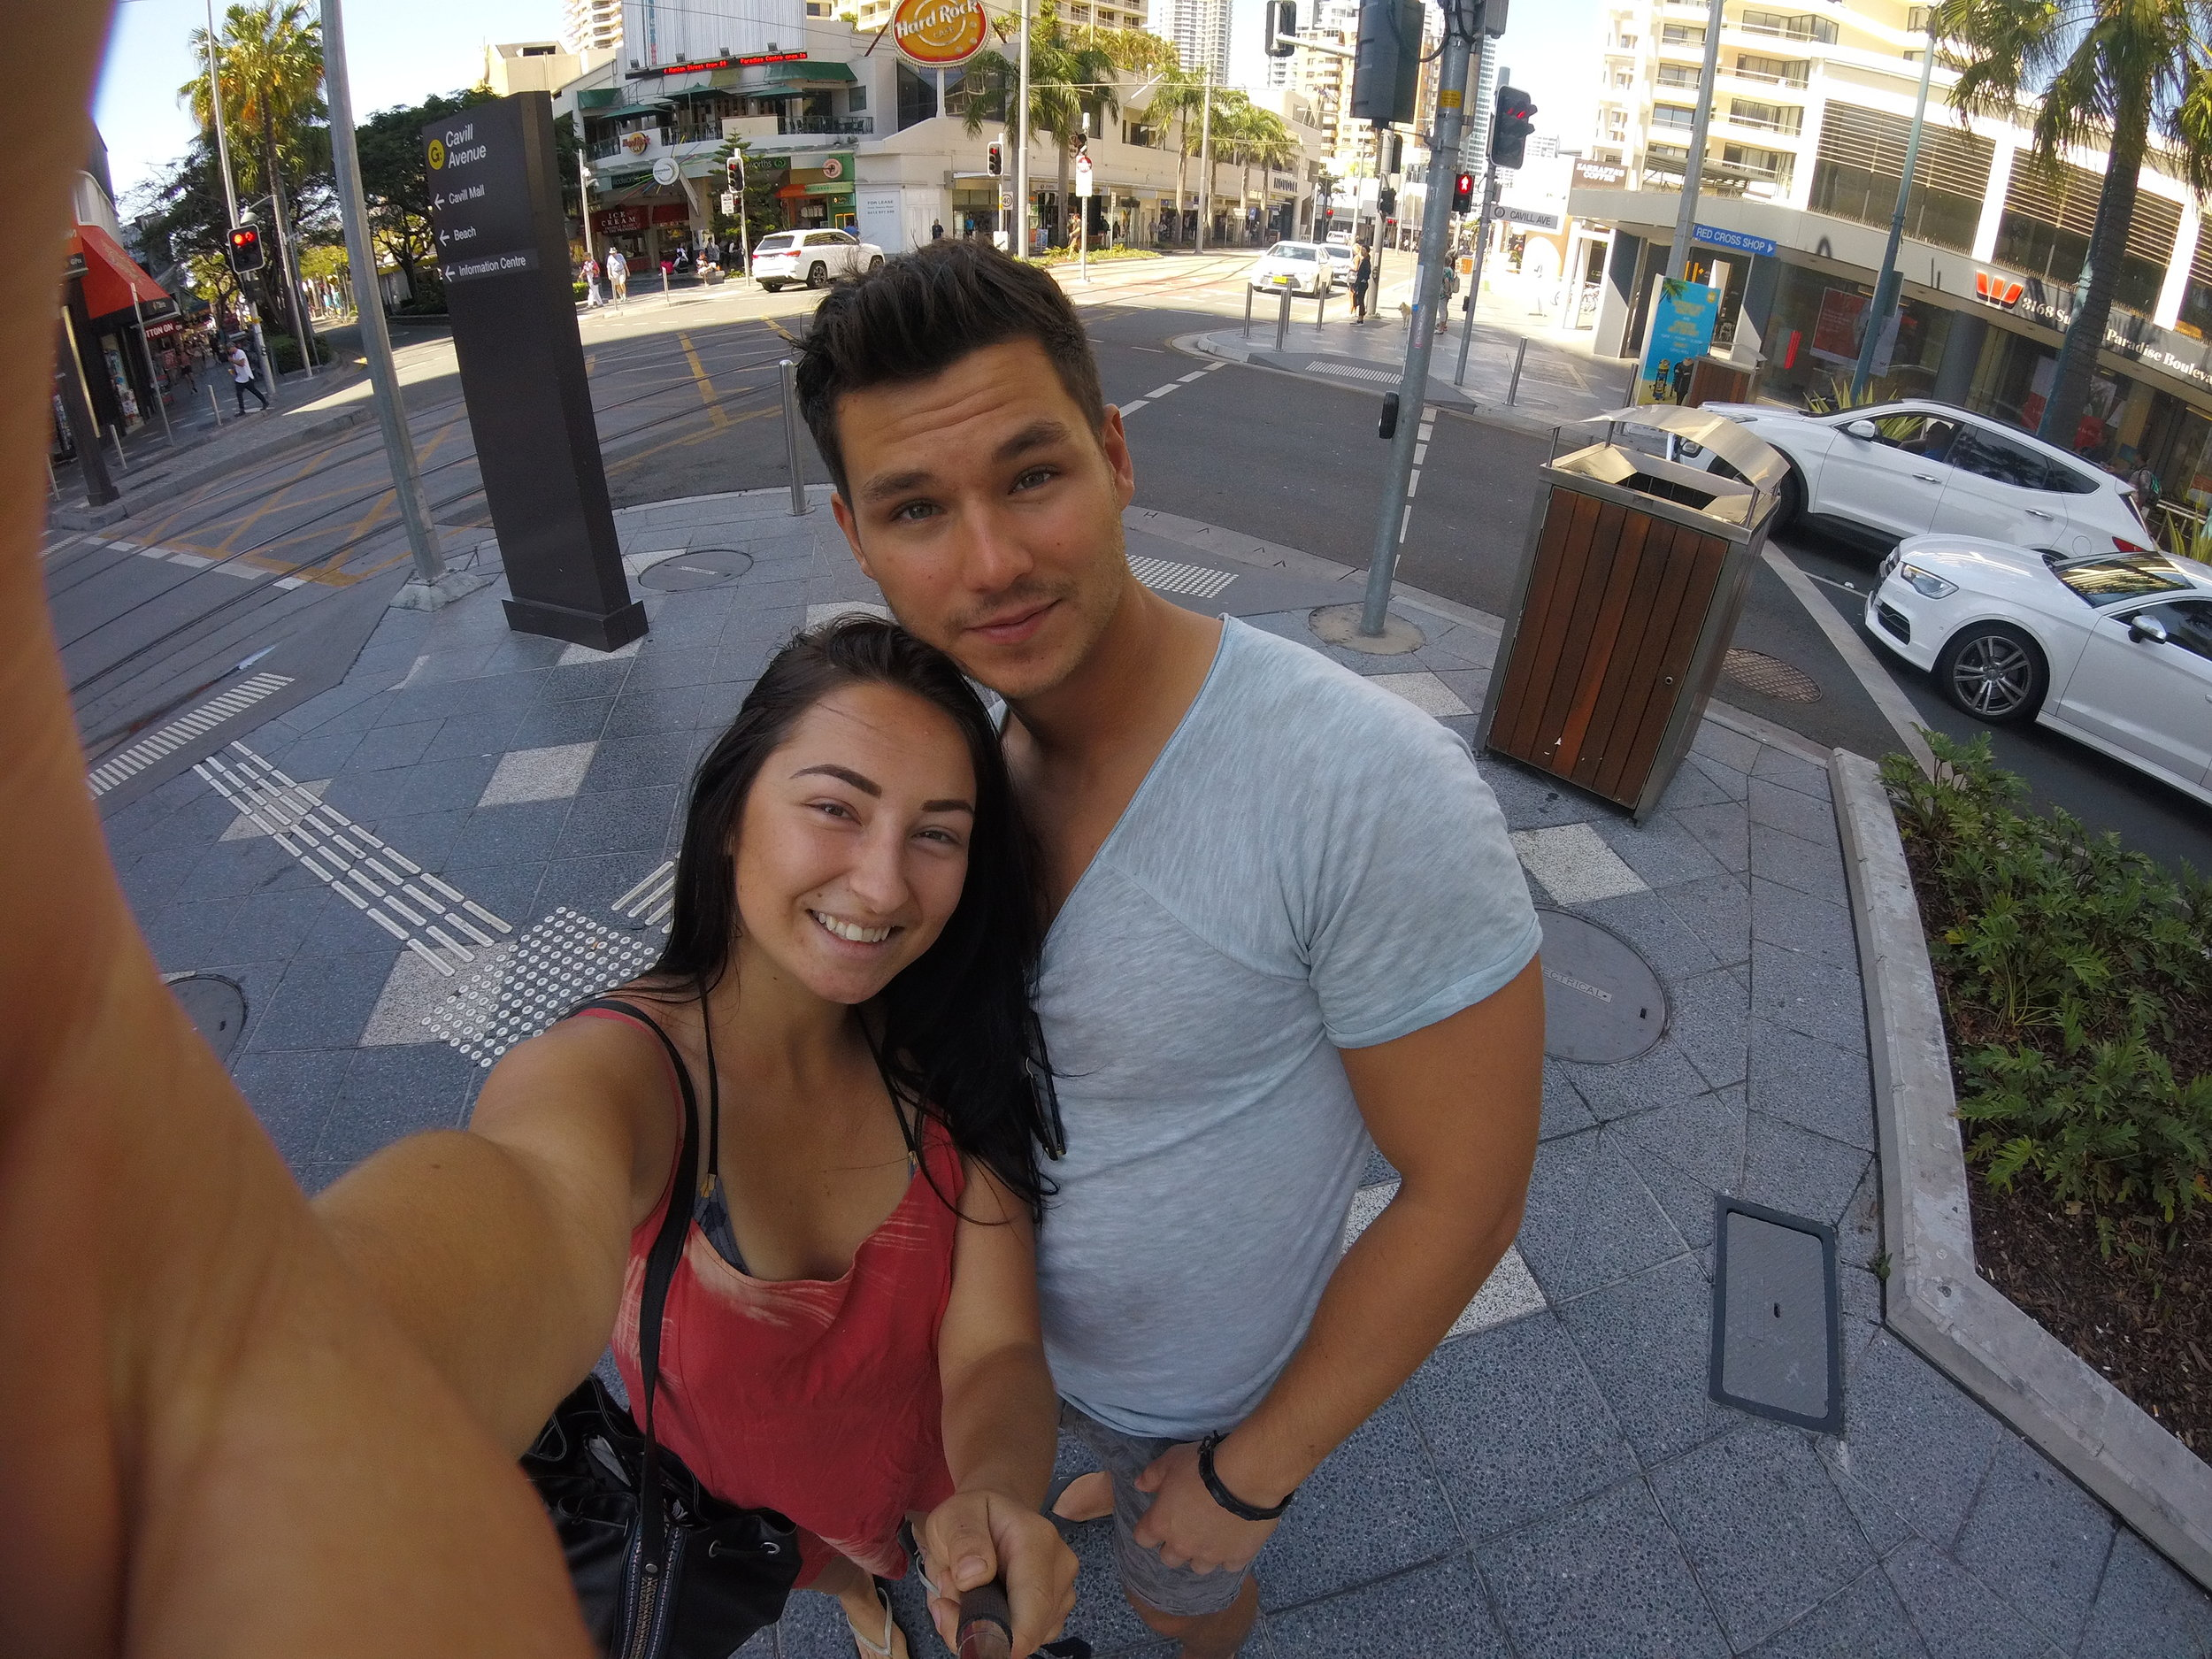 Henrik and I looking super tanned at Surfers Paradise.